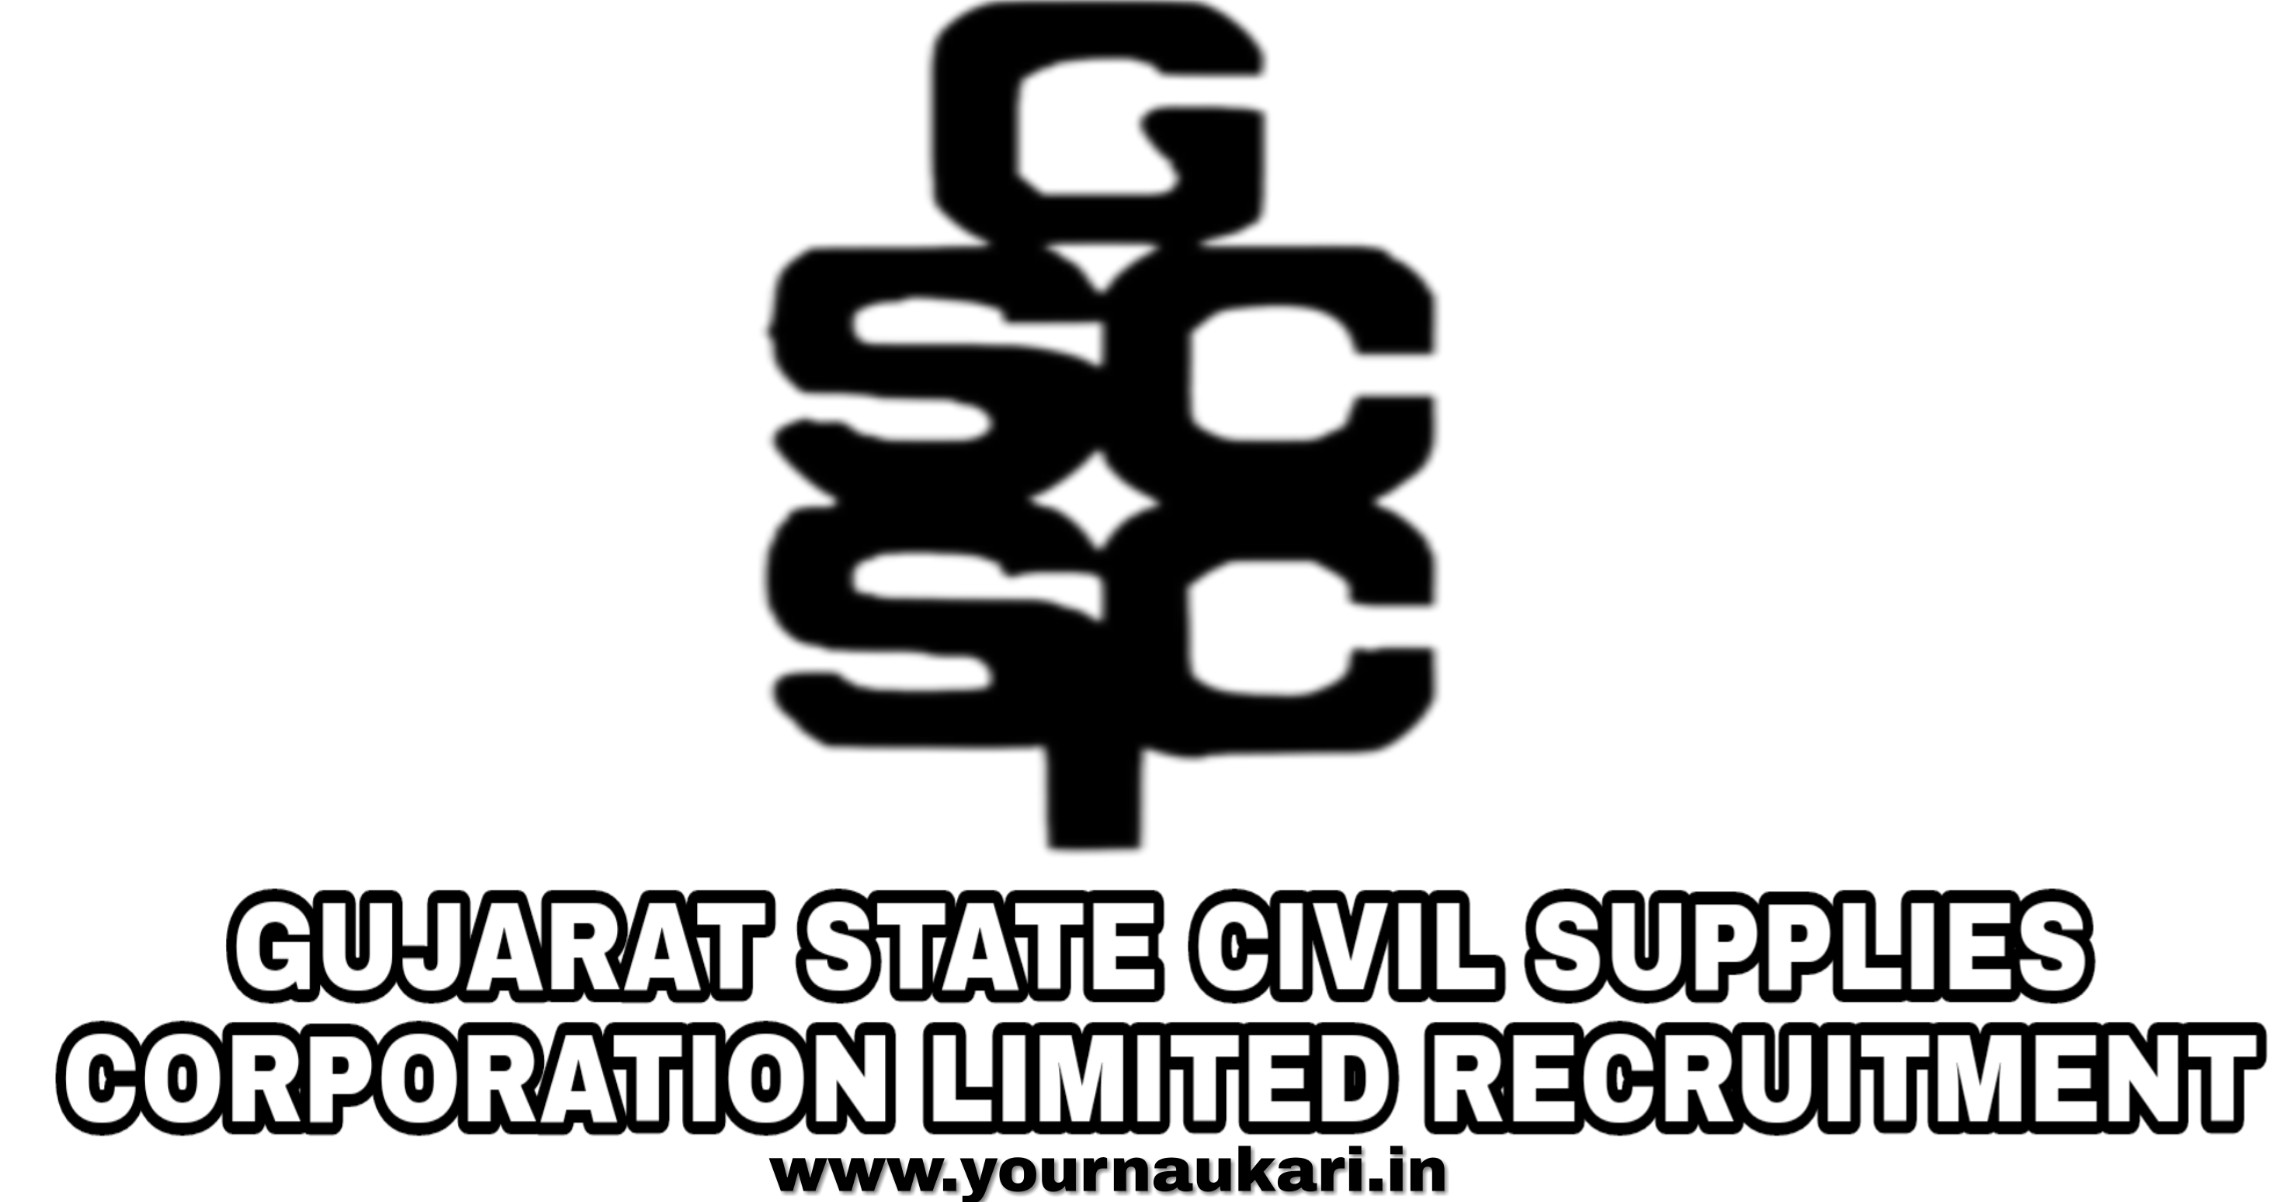 137 Gujarat State Civil Supplies Corporation Limited